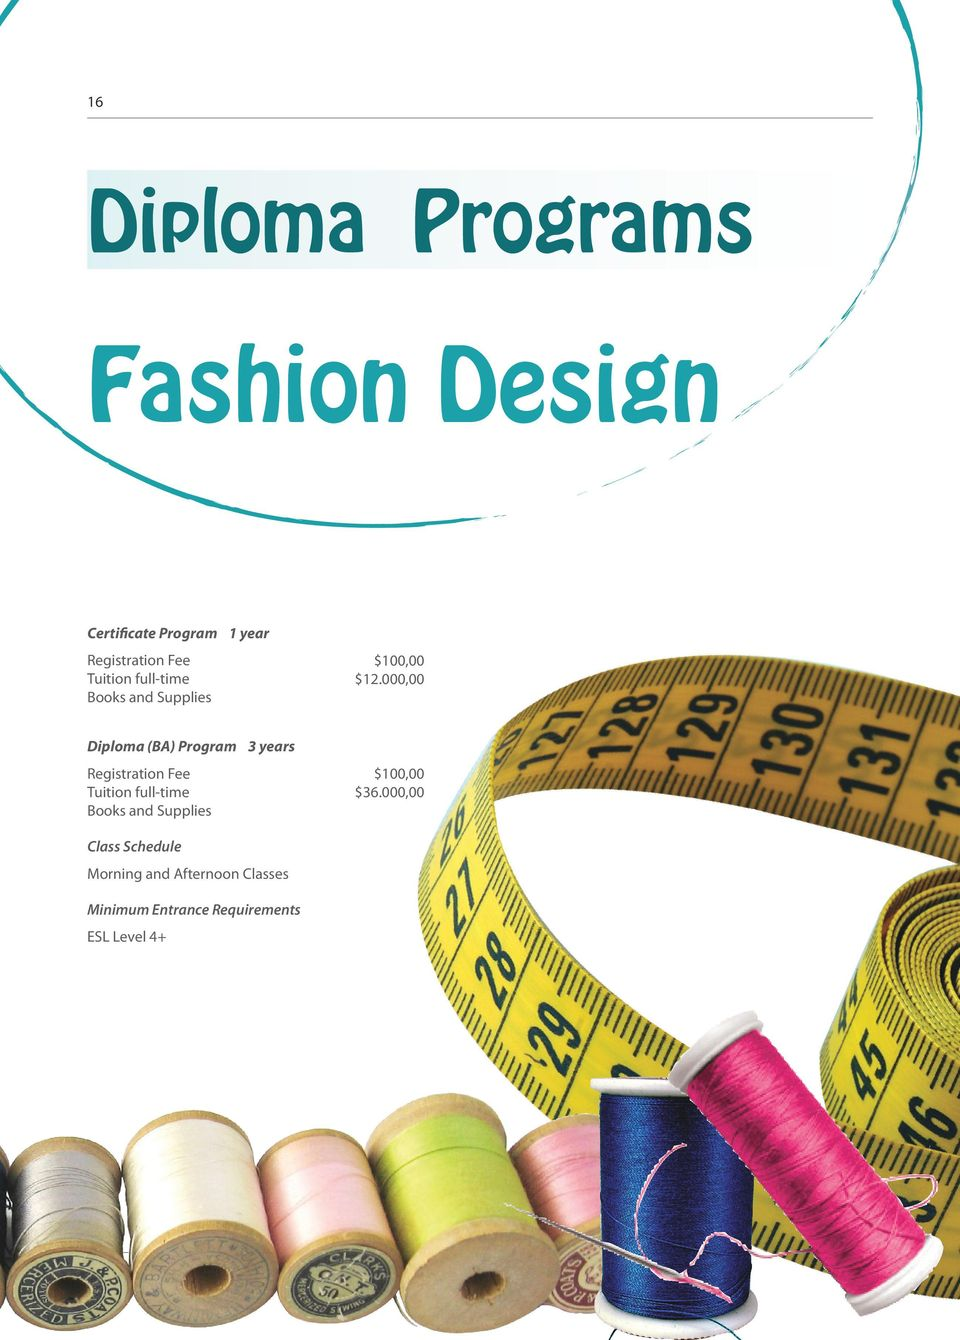 000,00 Diploma (BA) Program 3 years Registration Fee Tuition full-time Books and